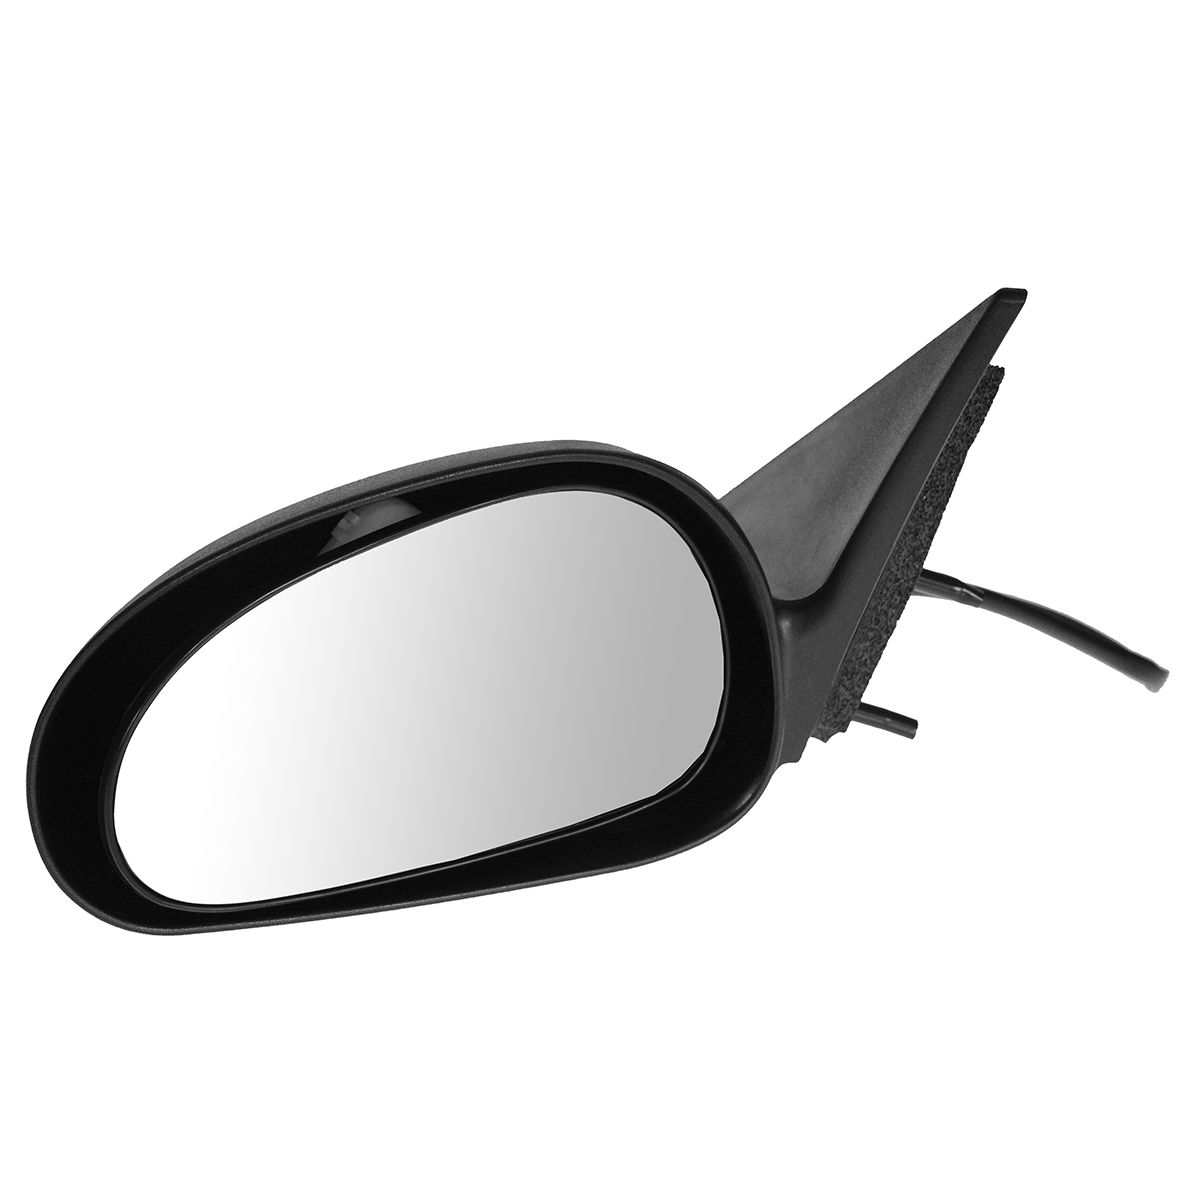 FOR 99-04 FORD MUSTANG OE STYLE POWERED DRIVER LEFT SIDE REAR VIEW DOOR MIRROR